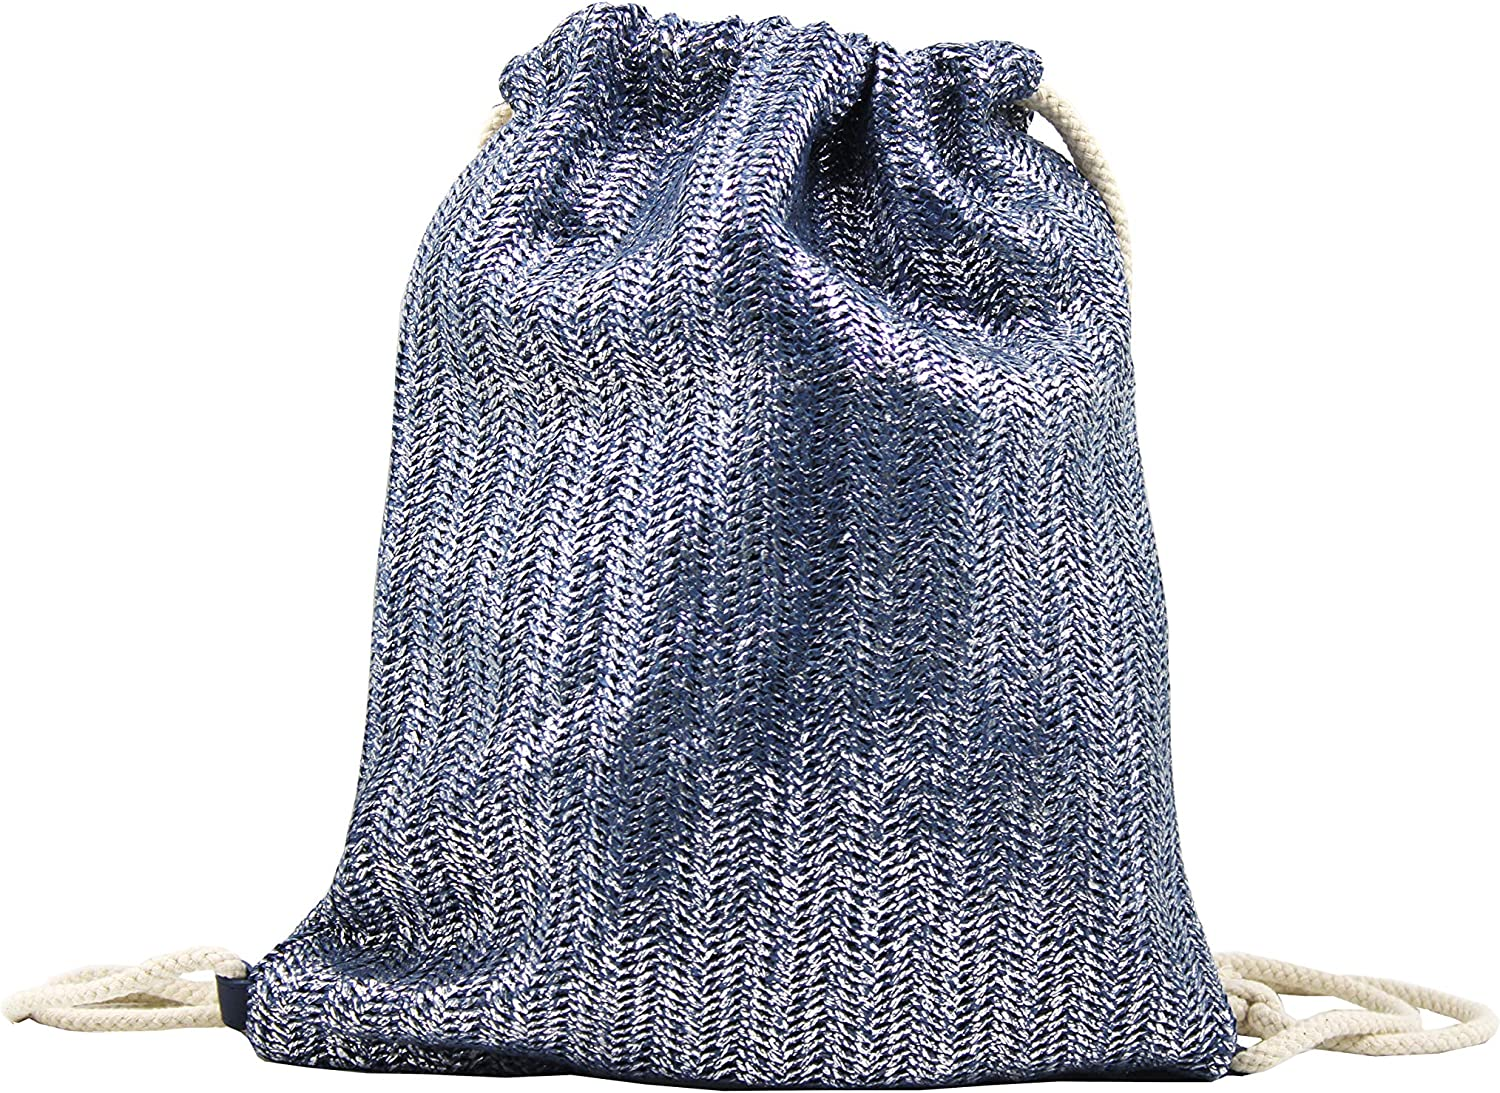 Ecyesegift Drawstring Backpack Lightweight Sackpack String bag for Girls and Women Silver